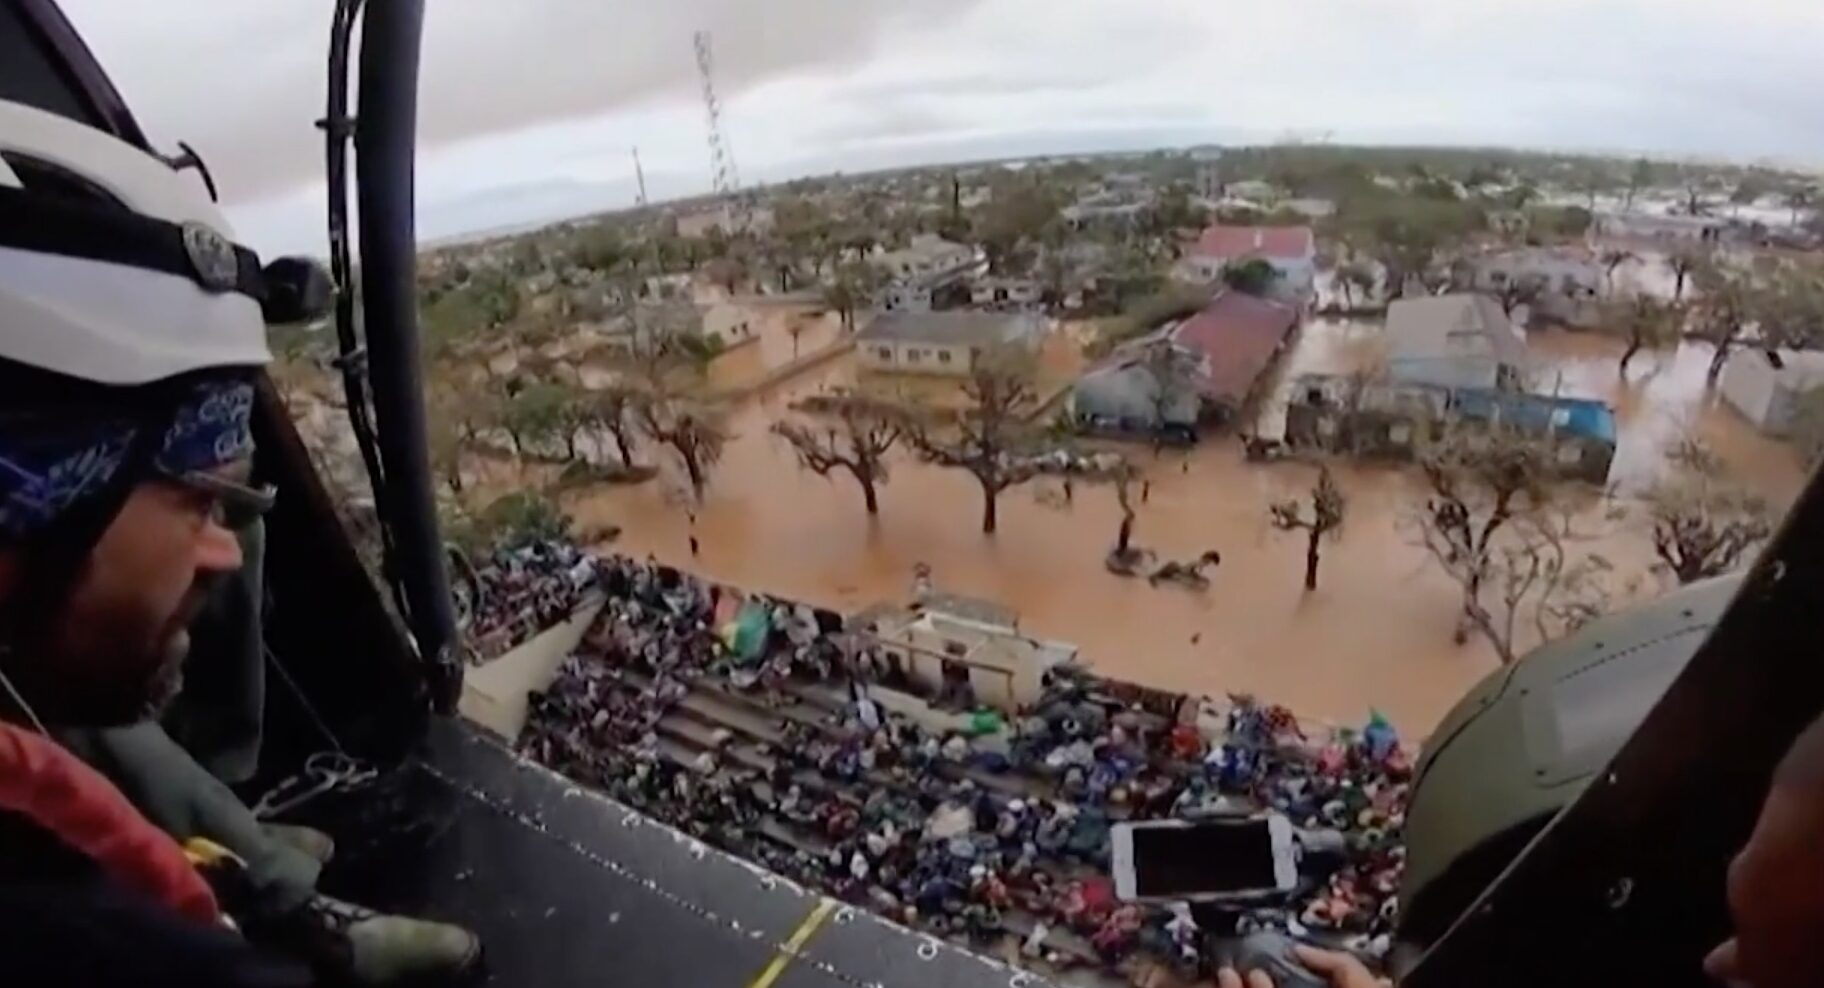 Helicopter rescues in Mozambique